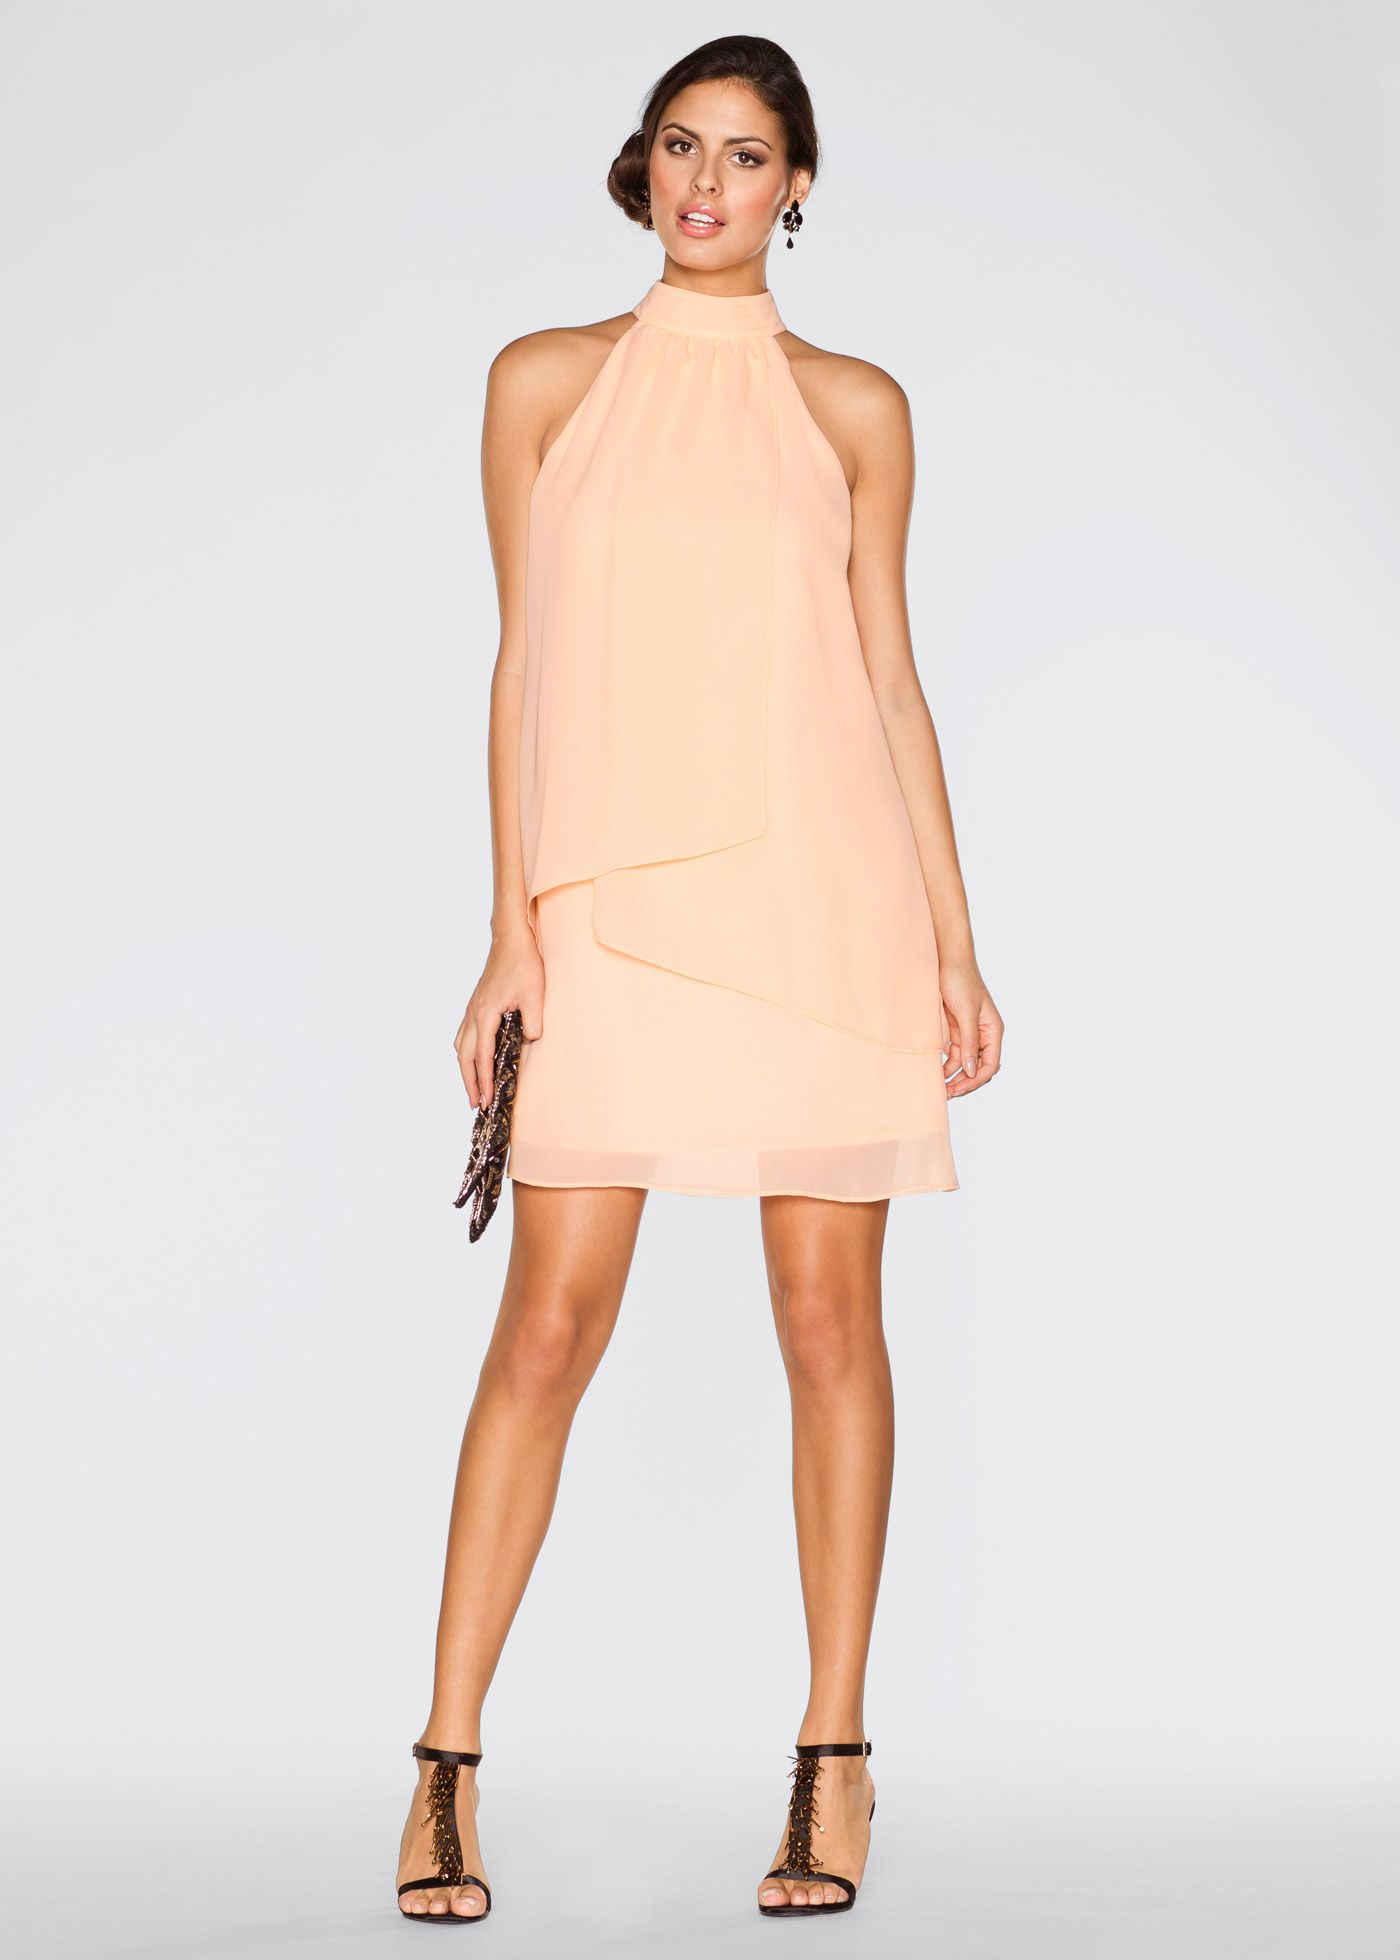 bonprix apricot dress - bojana krsmanovic related images